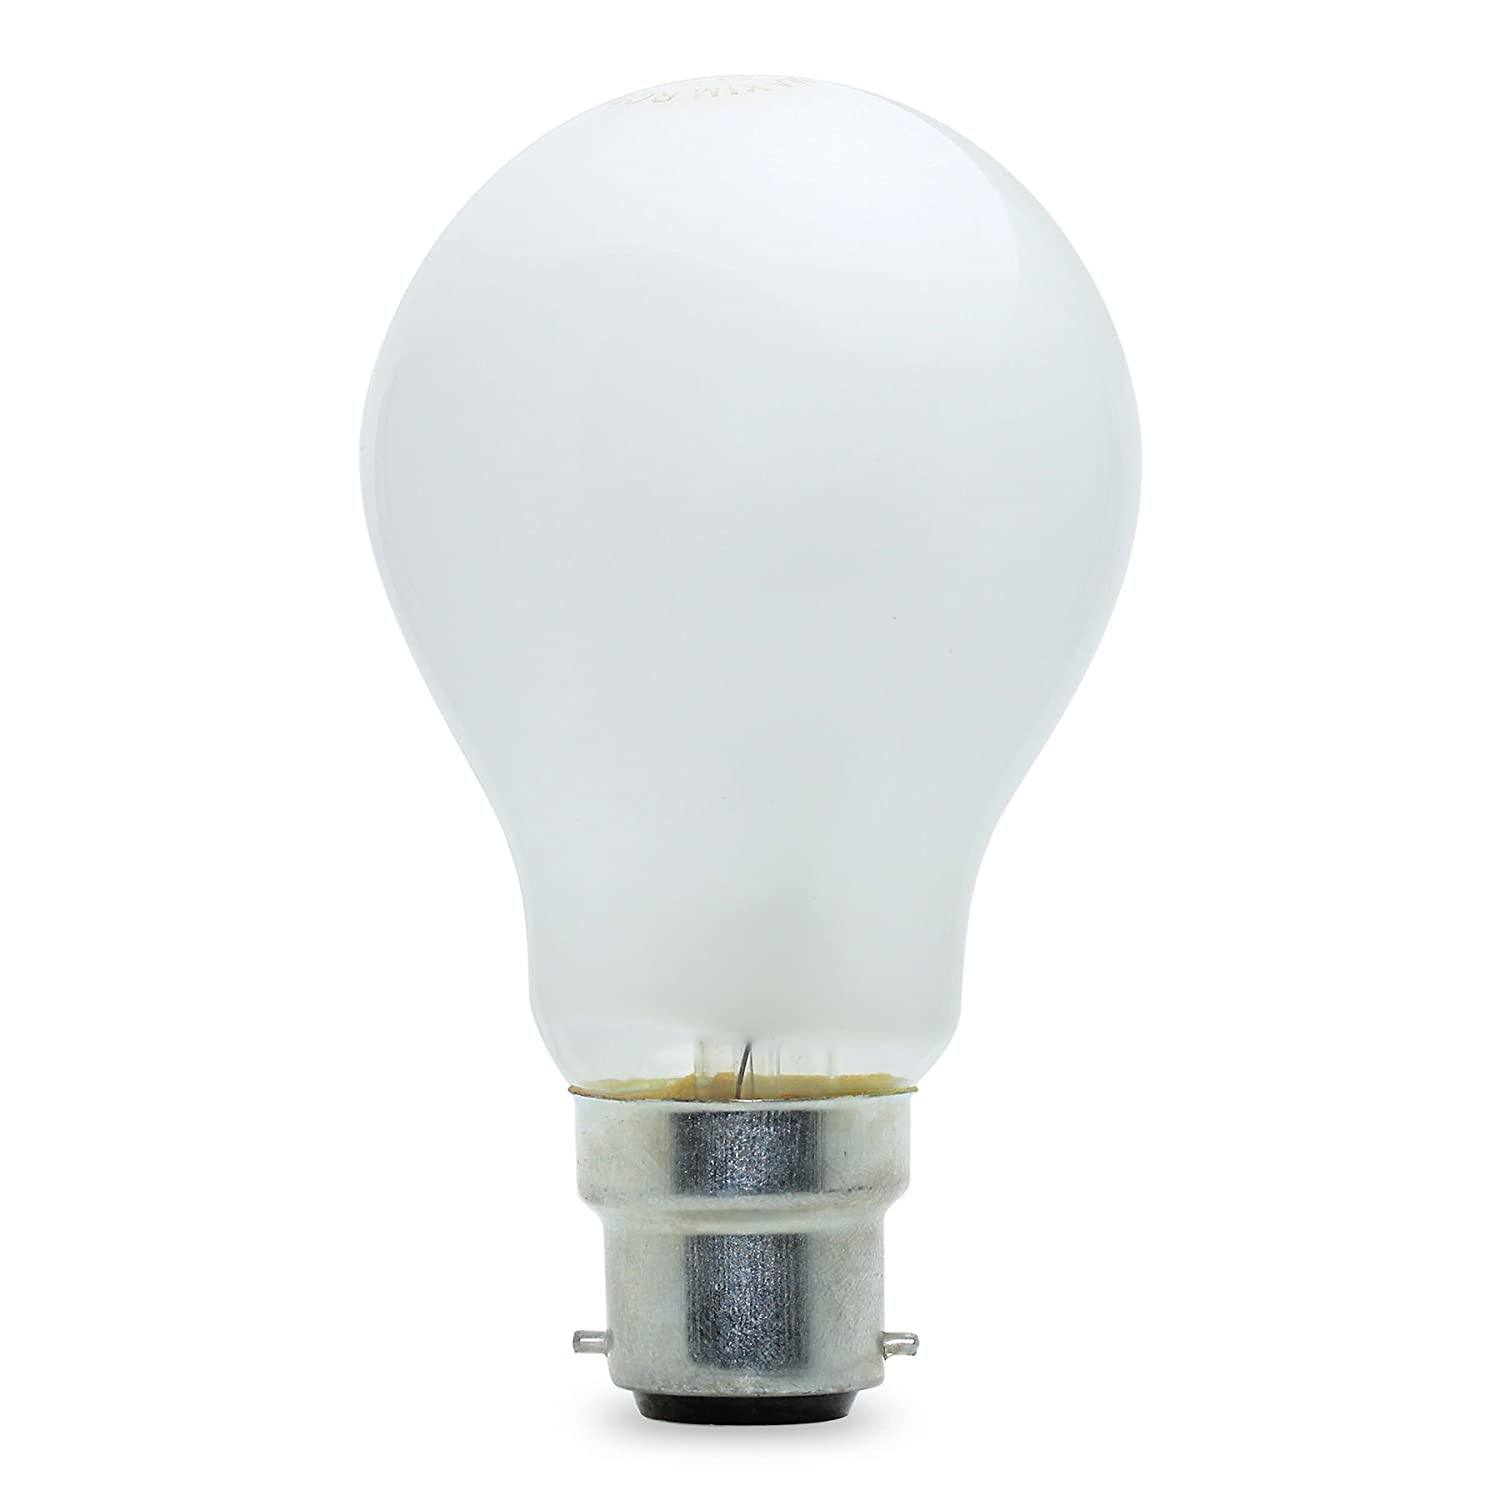 PACK OF 10 X 60 WATT LIGHT BULBS.STANDARD BAYONET FITTING NEW:  Amazon.co.uk: Lighting Design Inspirations